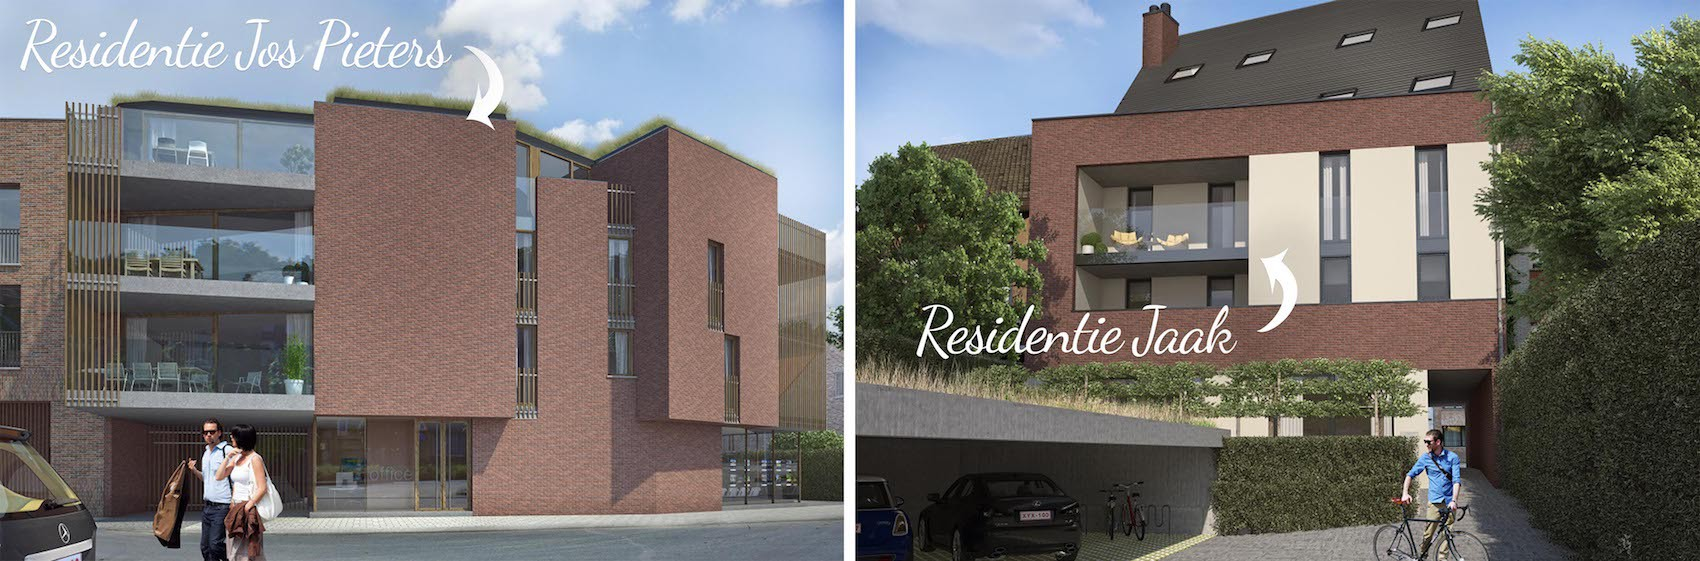 Header D-Build - Residentie Jos Pieters & Jaak - Diepenbeek